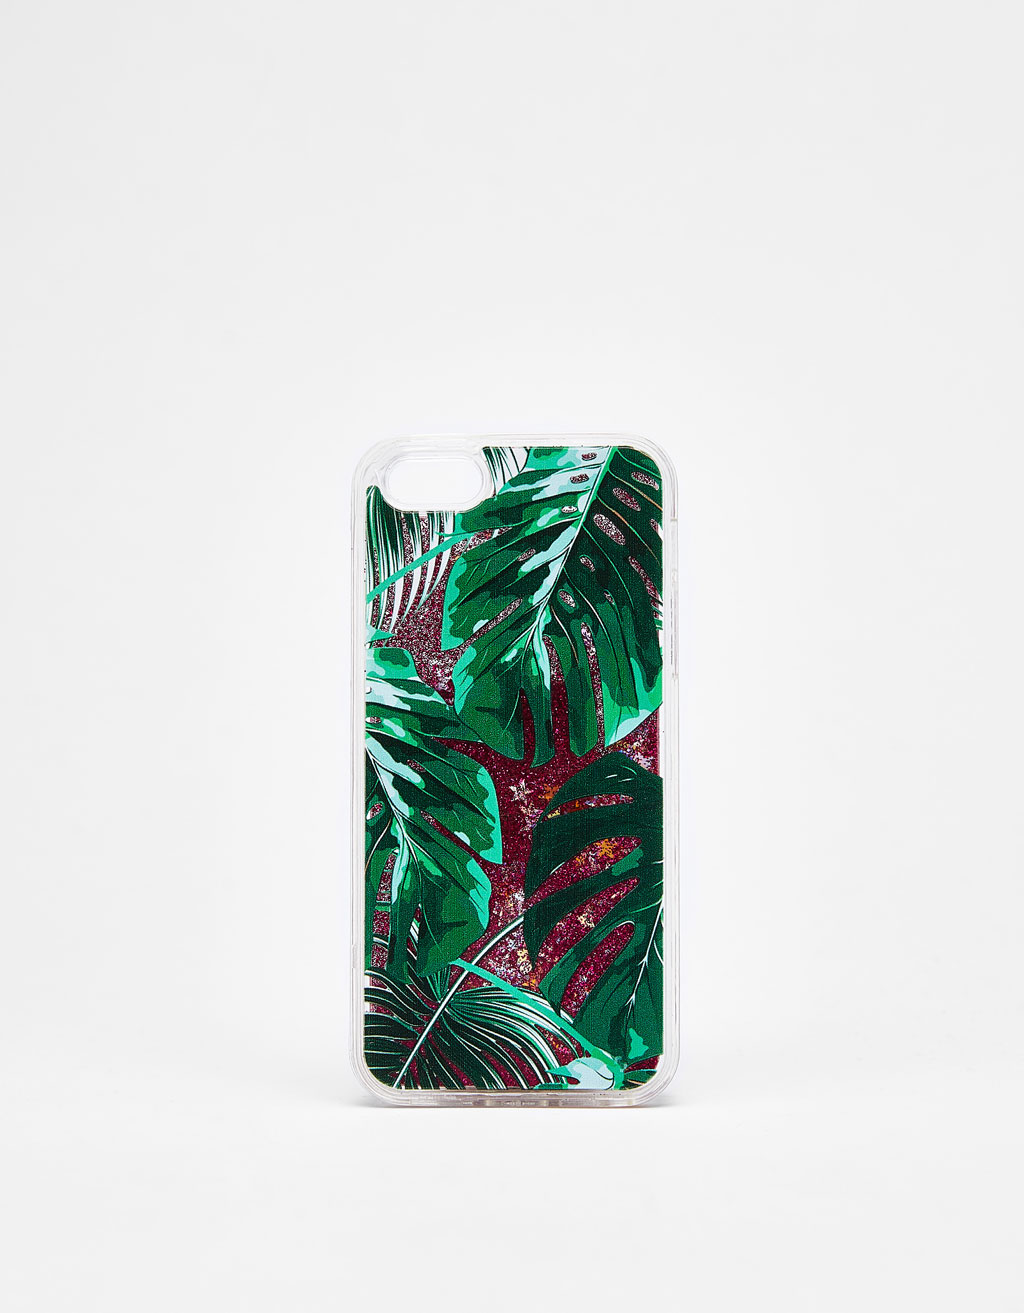 Coque tropicale iPhone 5/5s